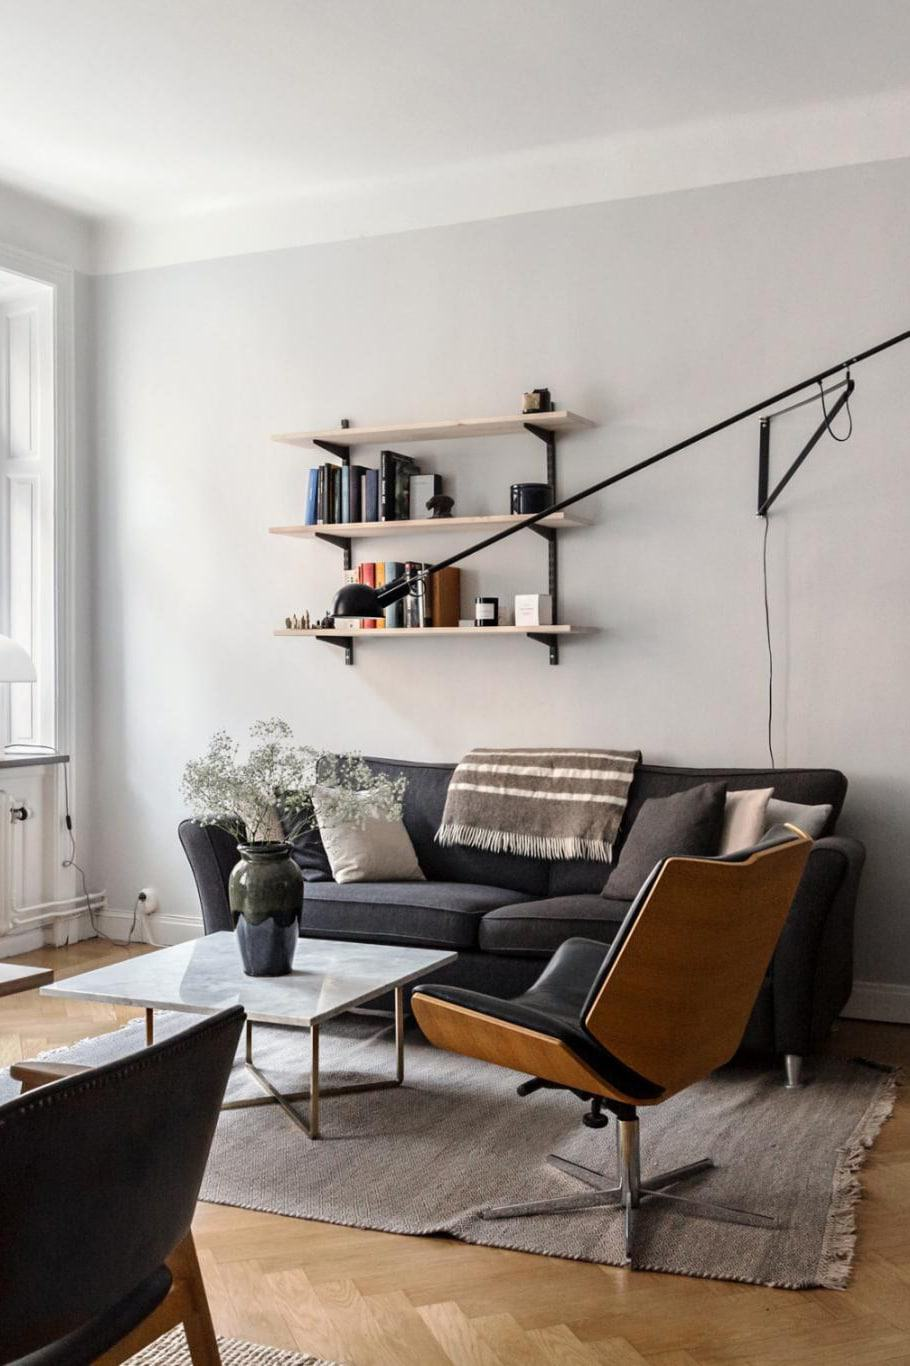 How To Decorate A Small Apartment: 10 Secrets